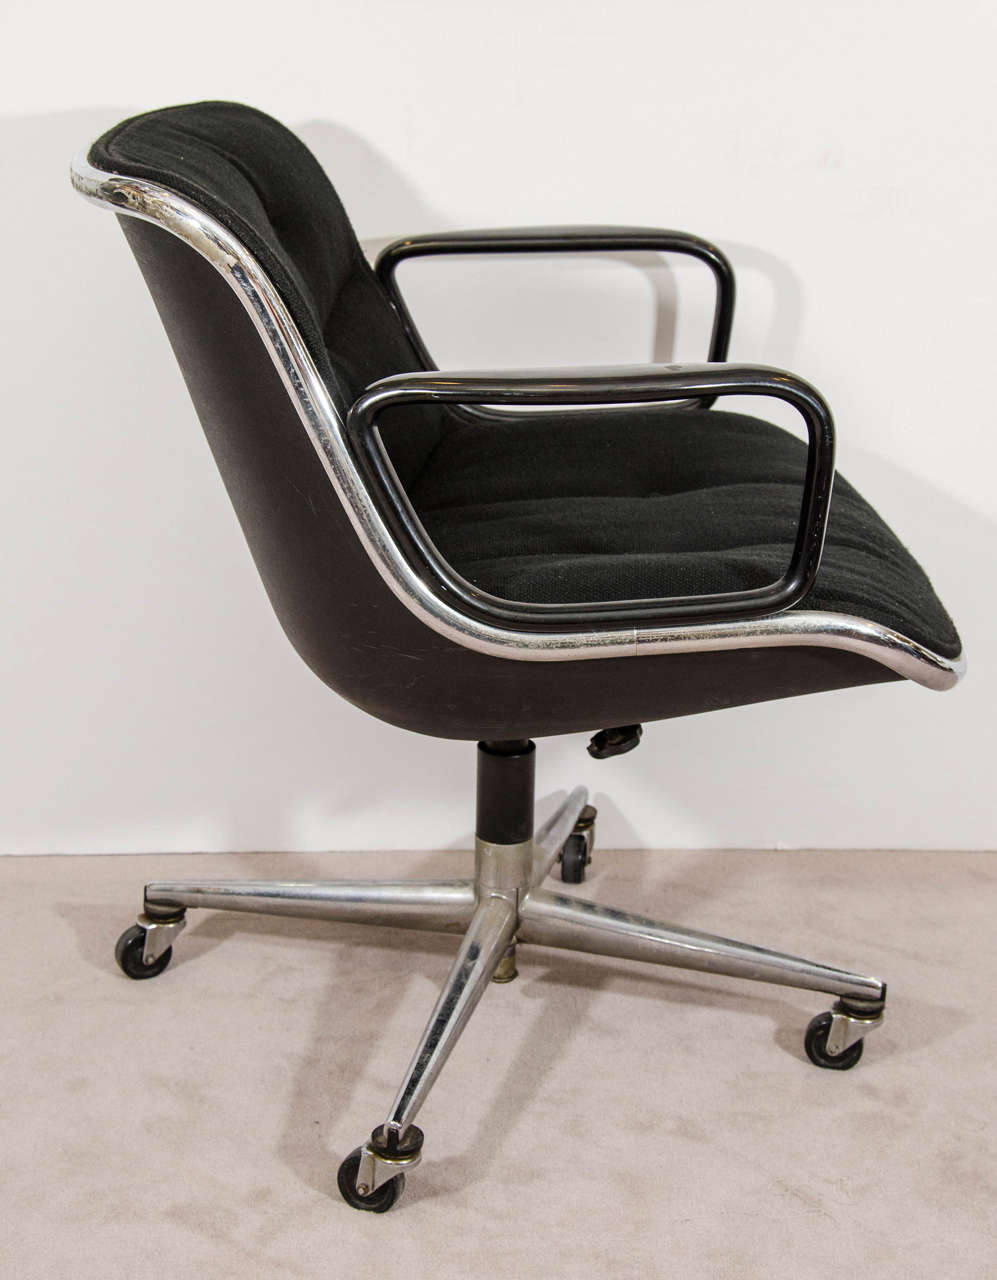 American Midcentury Charles Pollock for Knoll Executive Chair with Original Label For Sale